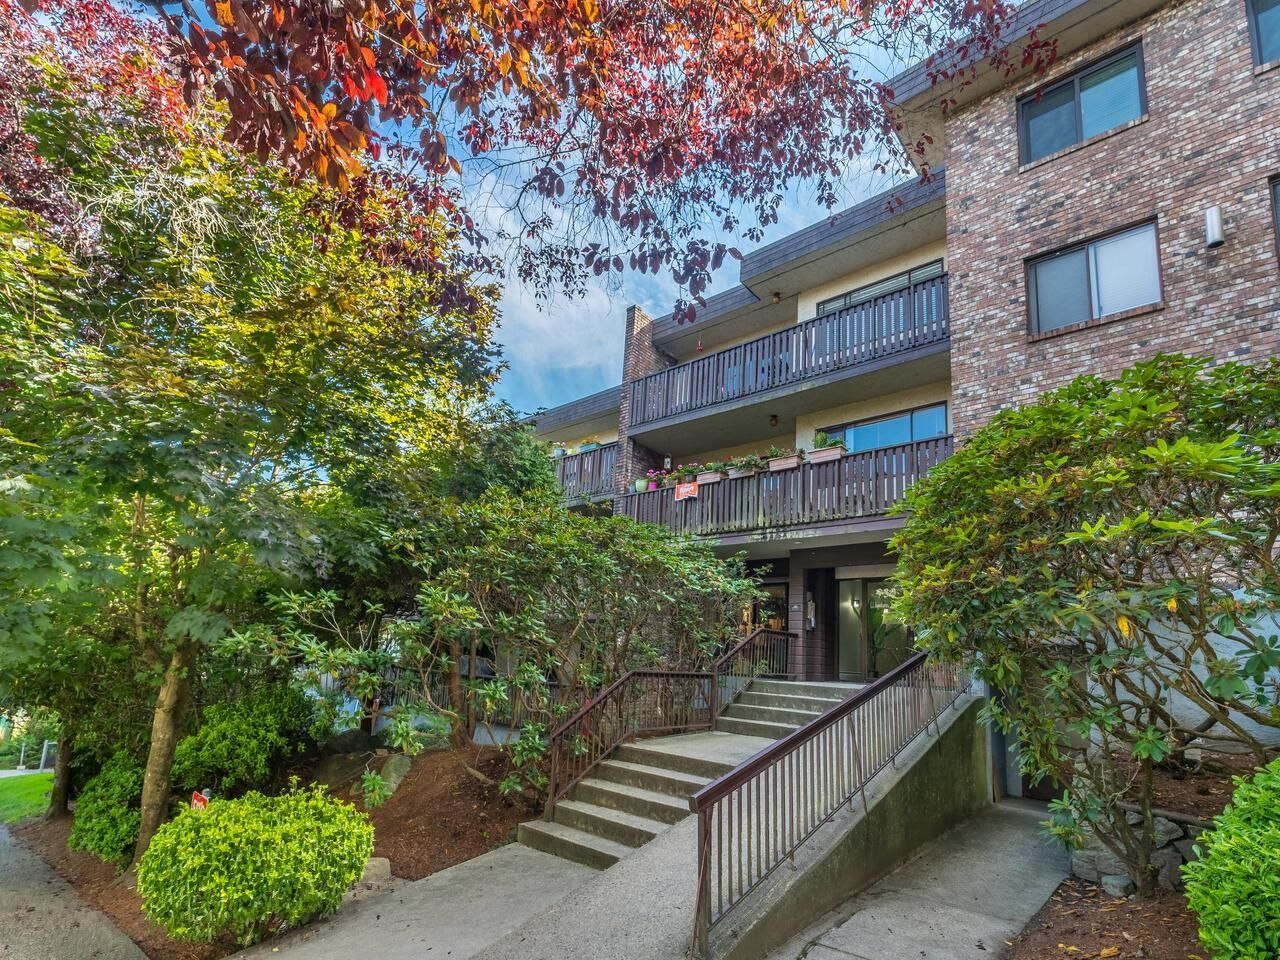 """Main Photo: 305 930 E 7TH Avenue in Vancouver: Mount Pleasant VE Condo for sale in """"Windsor Park"""" (Vancouver East)  : MLS®# R2617396"""